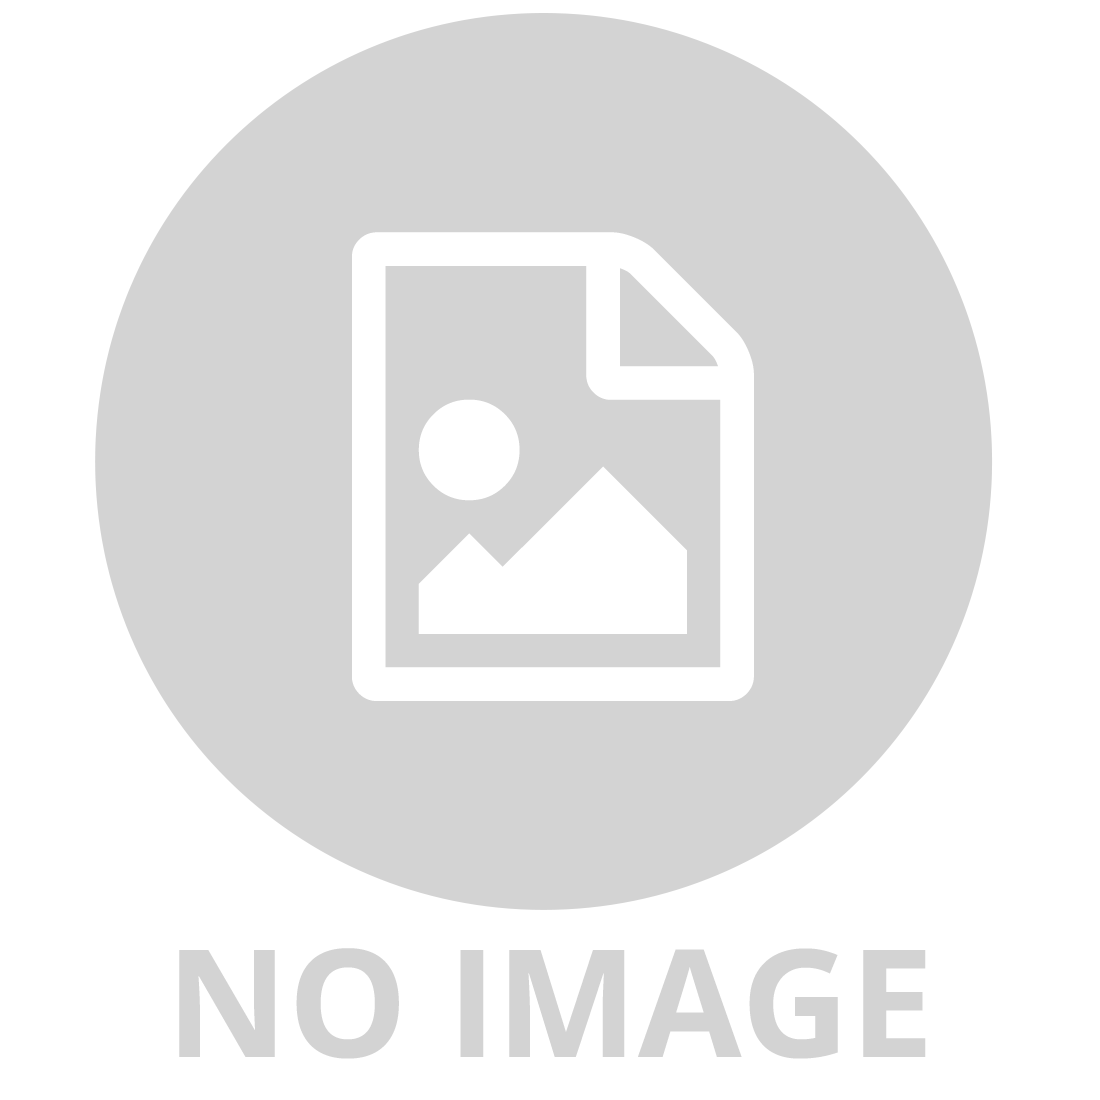 ADRENALIN STREET WAVE III SKATEBOARD 31 X 8